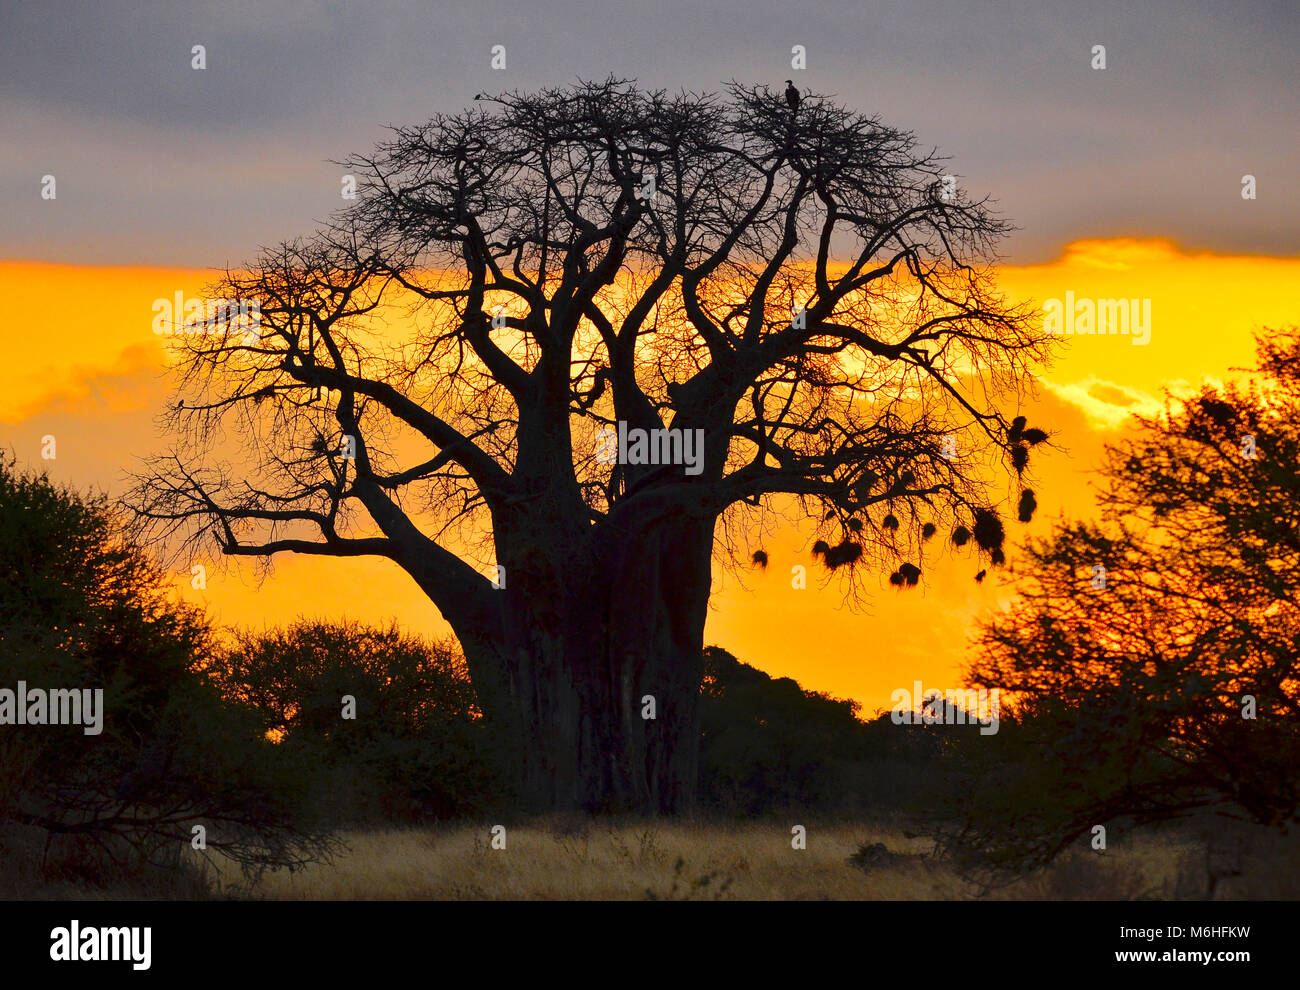 Tarangire national park is an excellent game viewing destination in Tanzania. Baobab tree at sunrise. - Stock Image